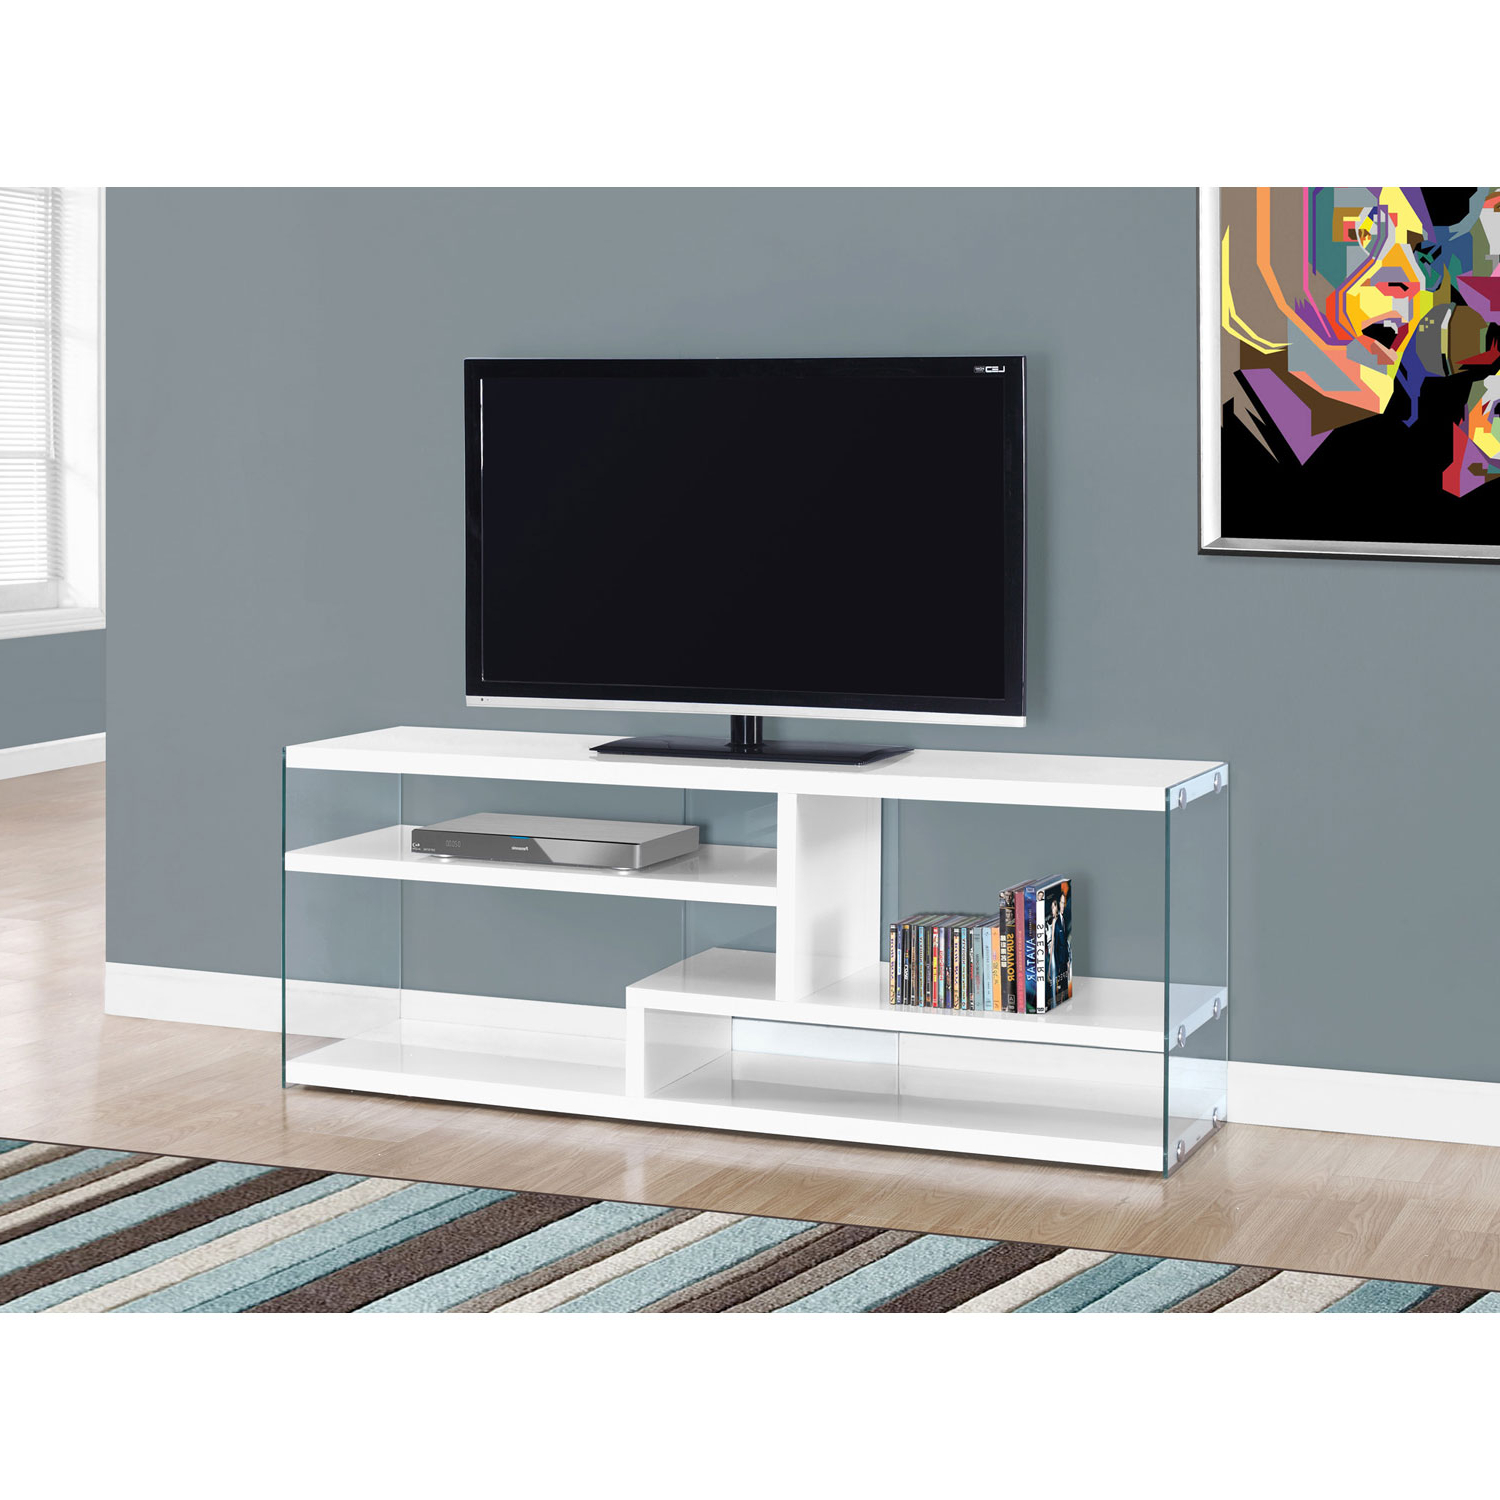 Most Recent Hawthorne Ave Tv Stand 60L / Glossy White With Tempered Glass I 2690 Within Noah 75 Inch Tv Stands (View 7 of 20)